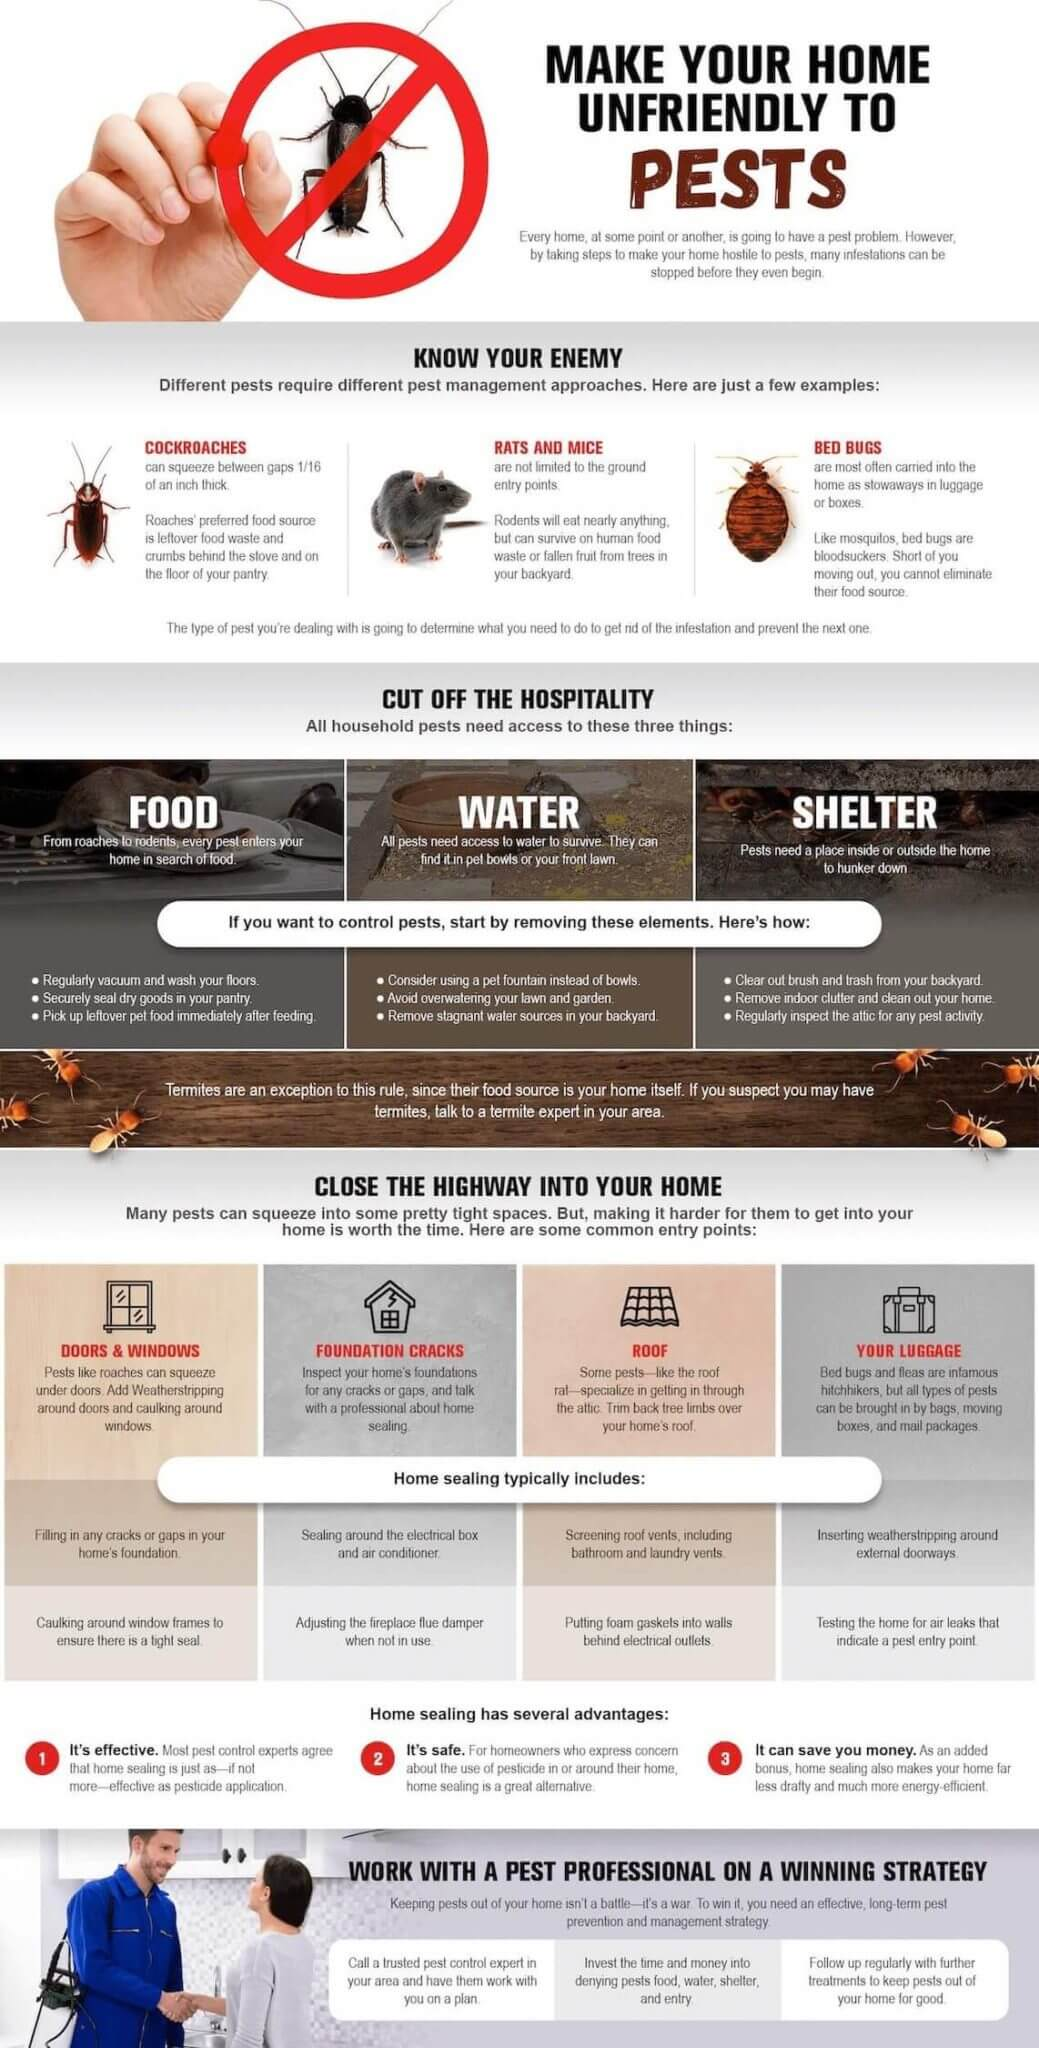 This infographic outlines several ways homeowners can work to make their homes more unfriendly to invasive pests.